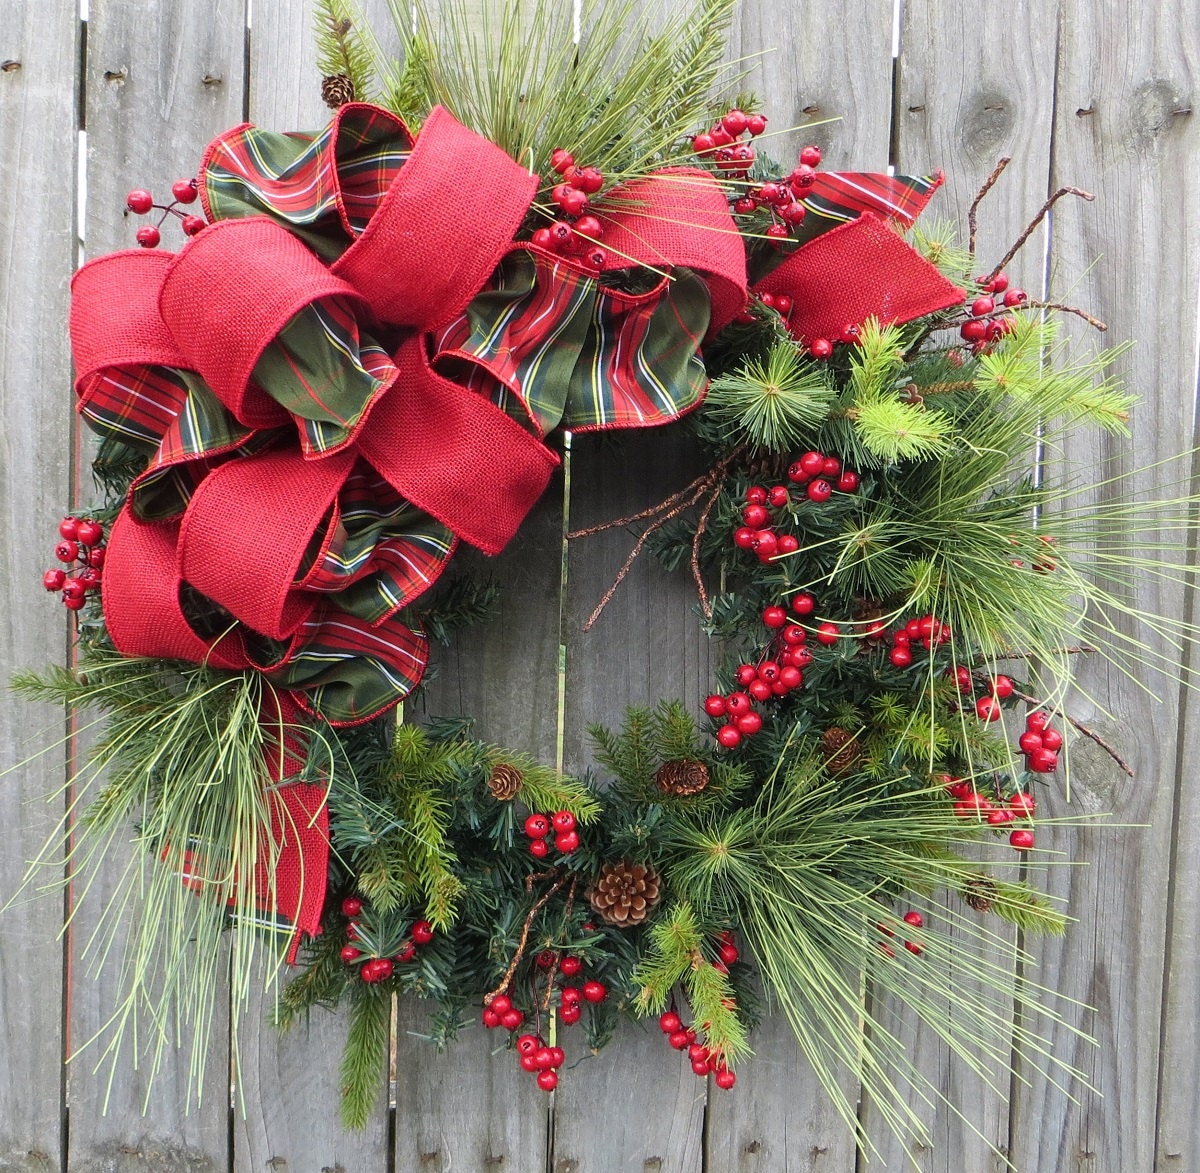 Christmas Wreath Holiday Wreath Burlap Berry Wreath Greenery